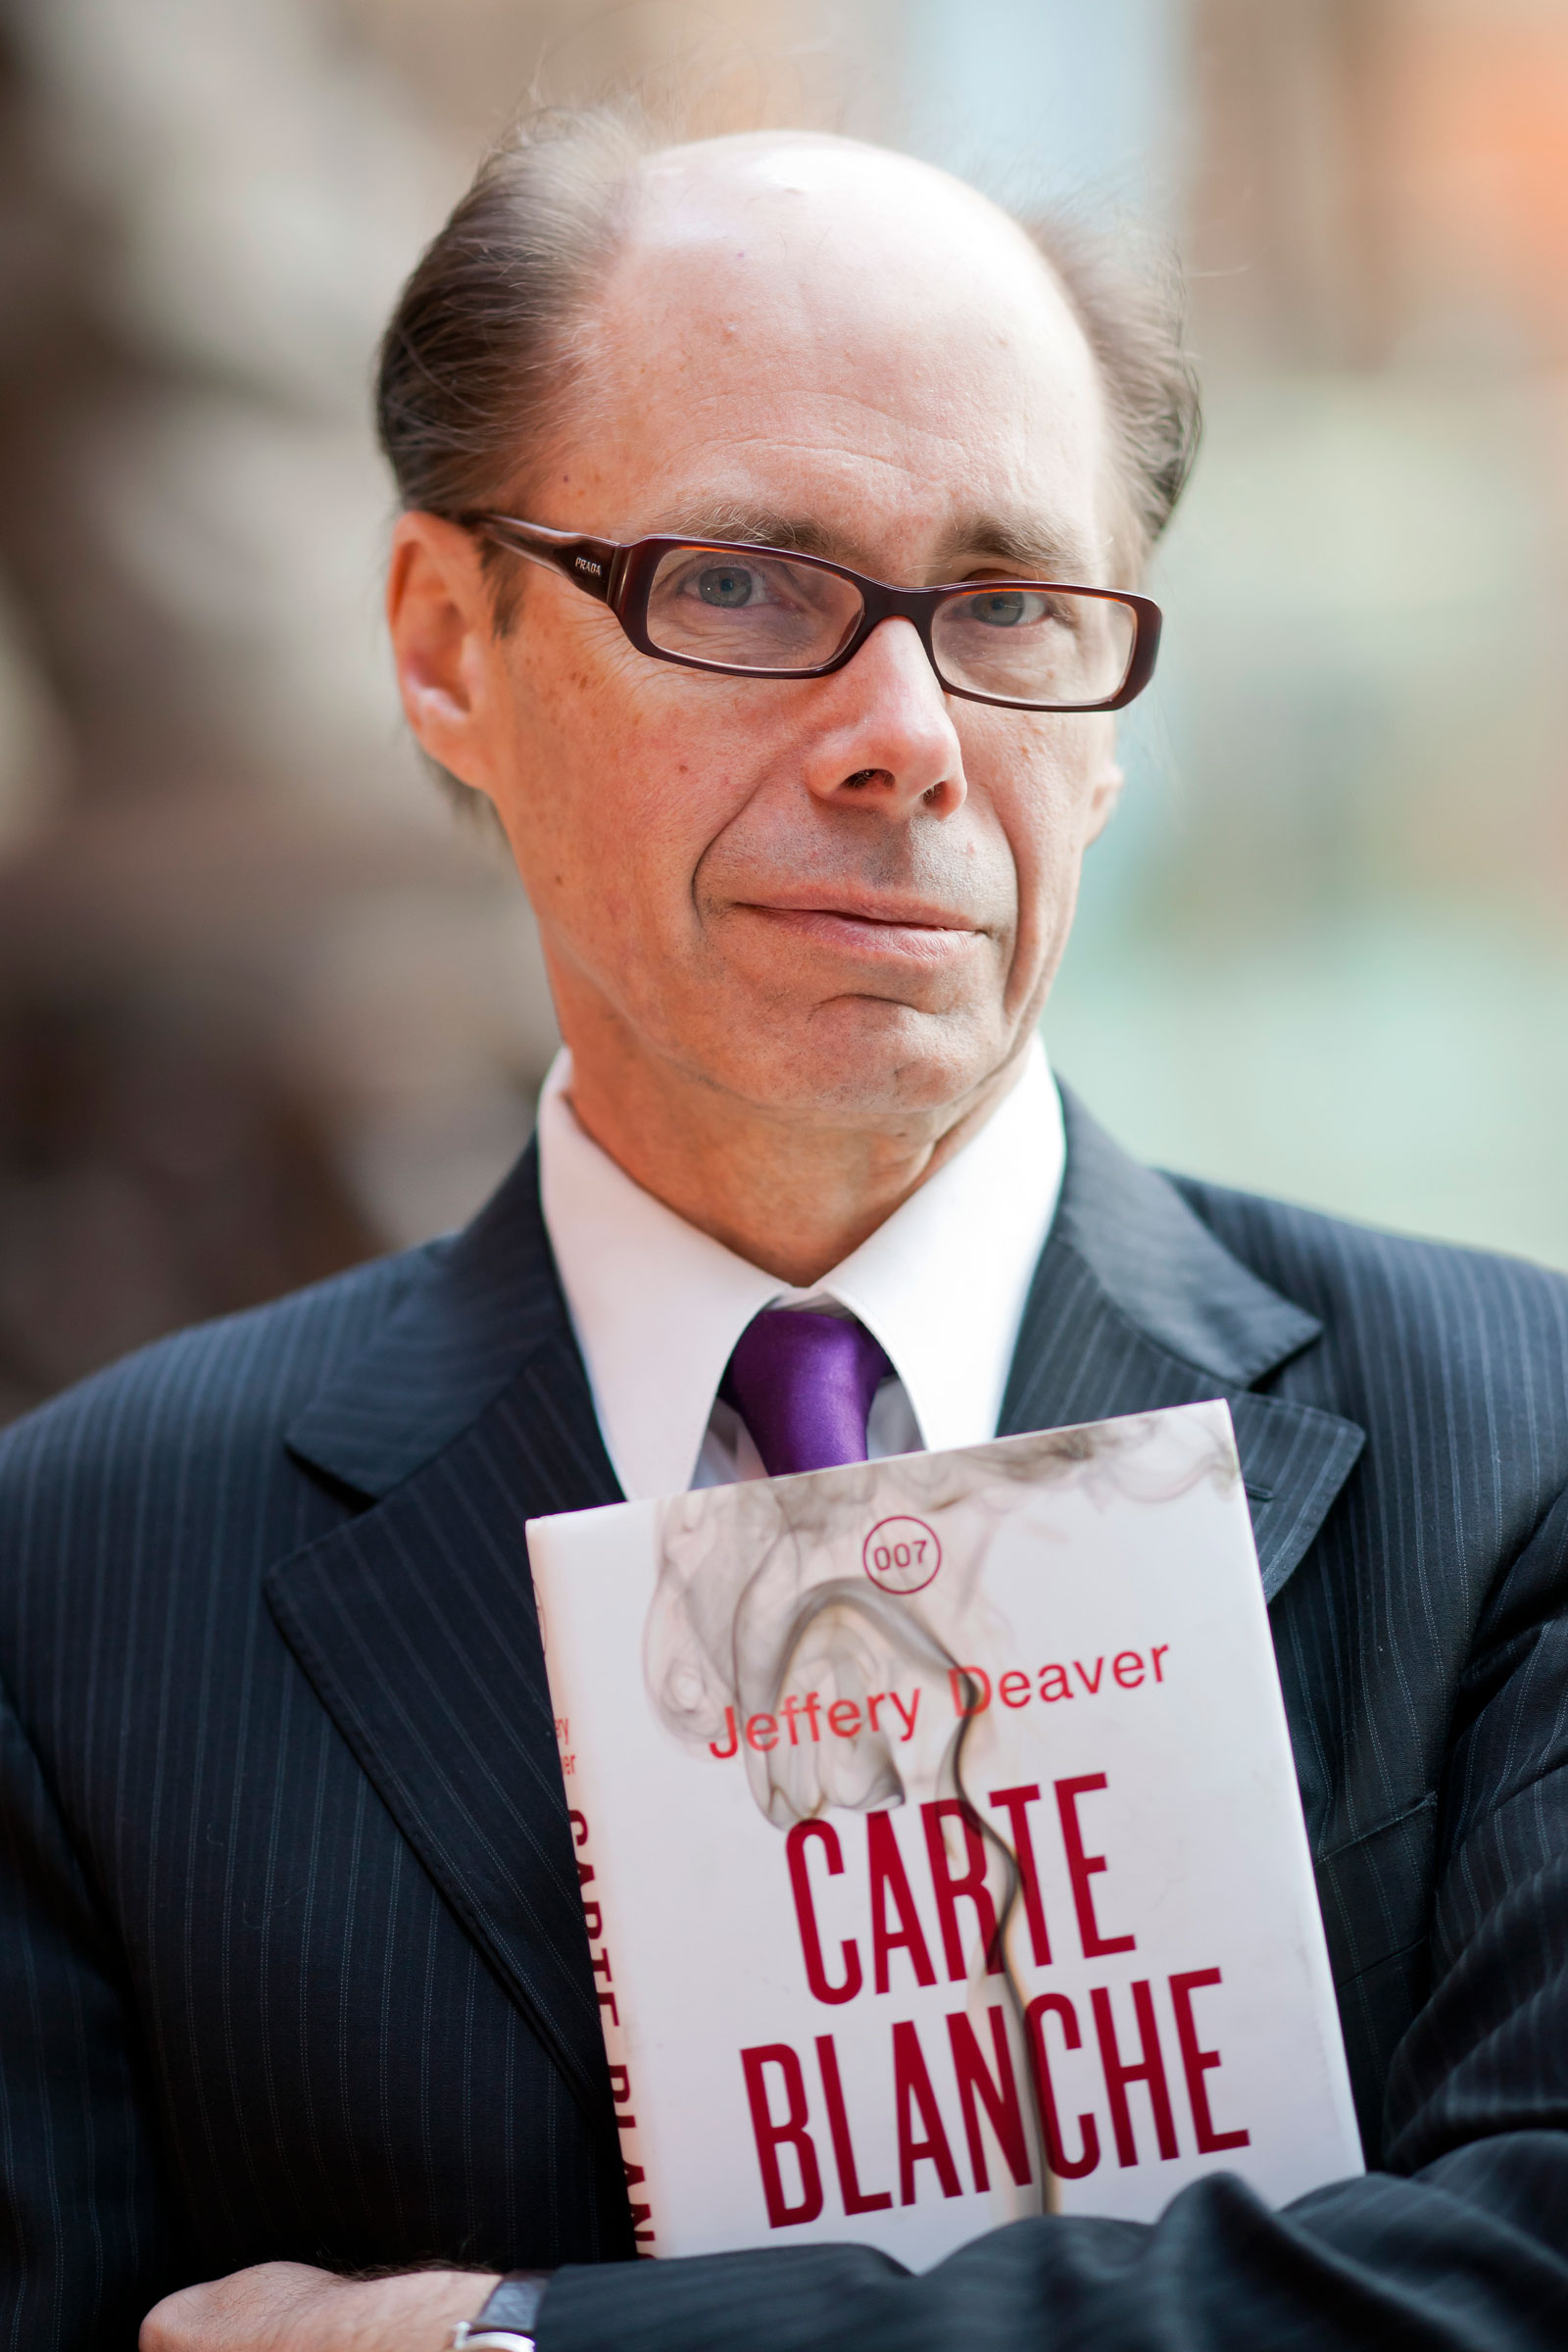 Launch of New James Bond Book, Carte Blanche